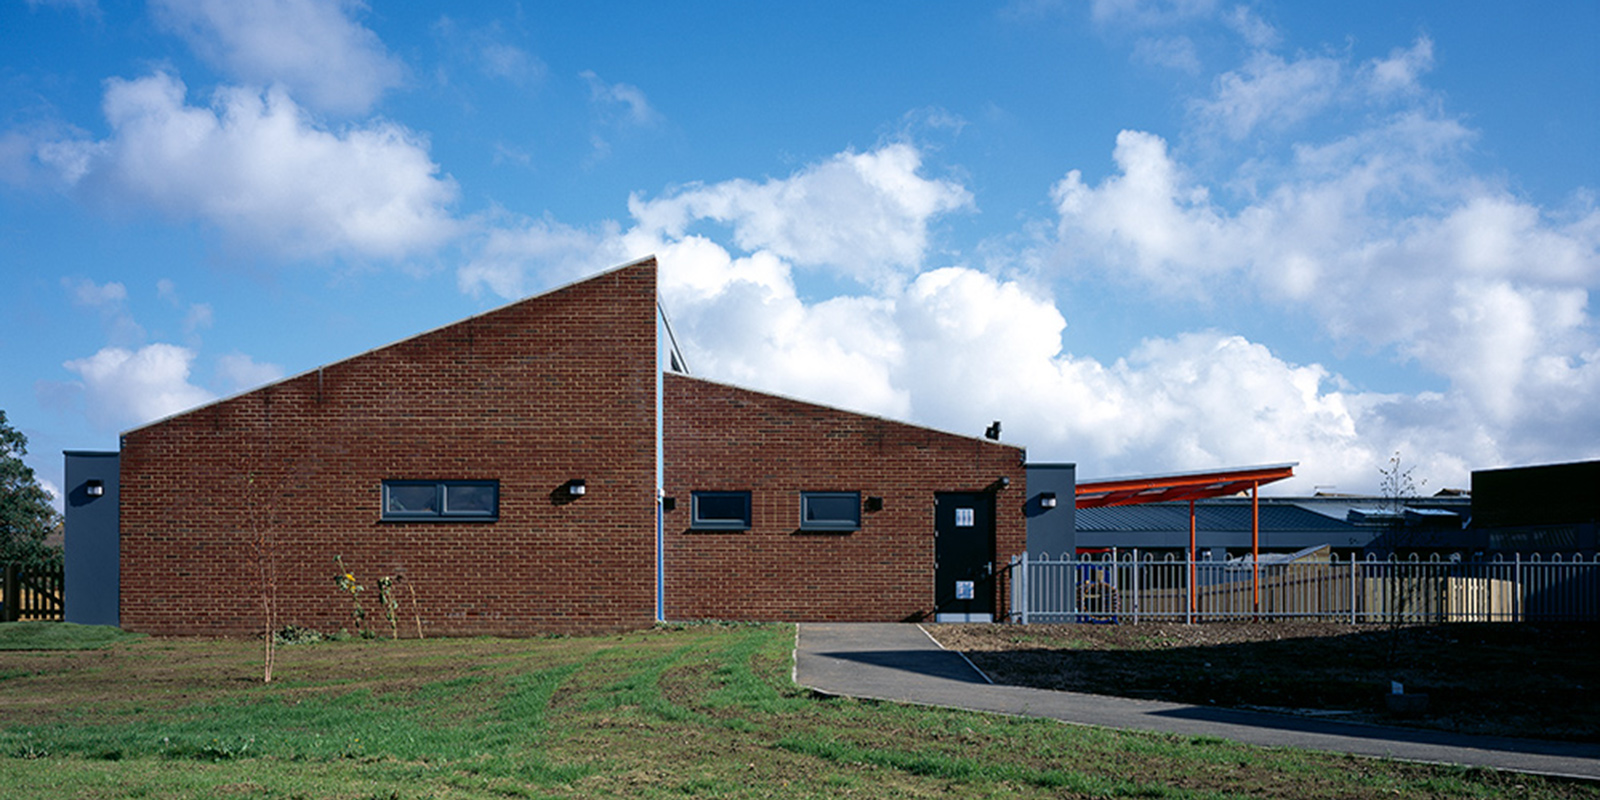 Danecourt Primary School